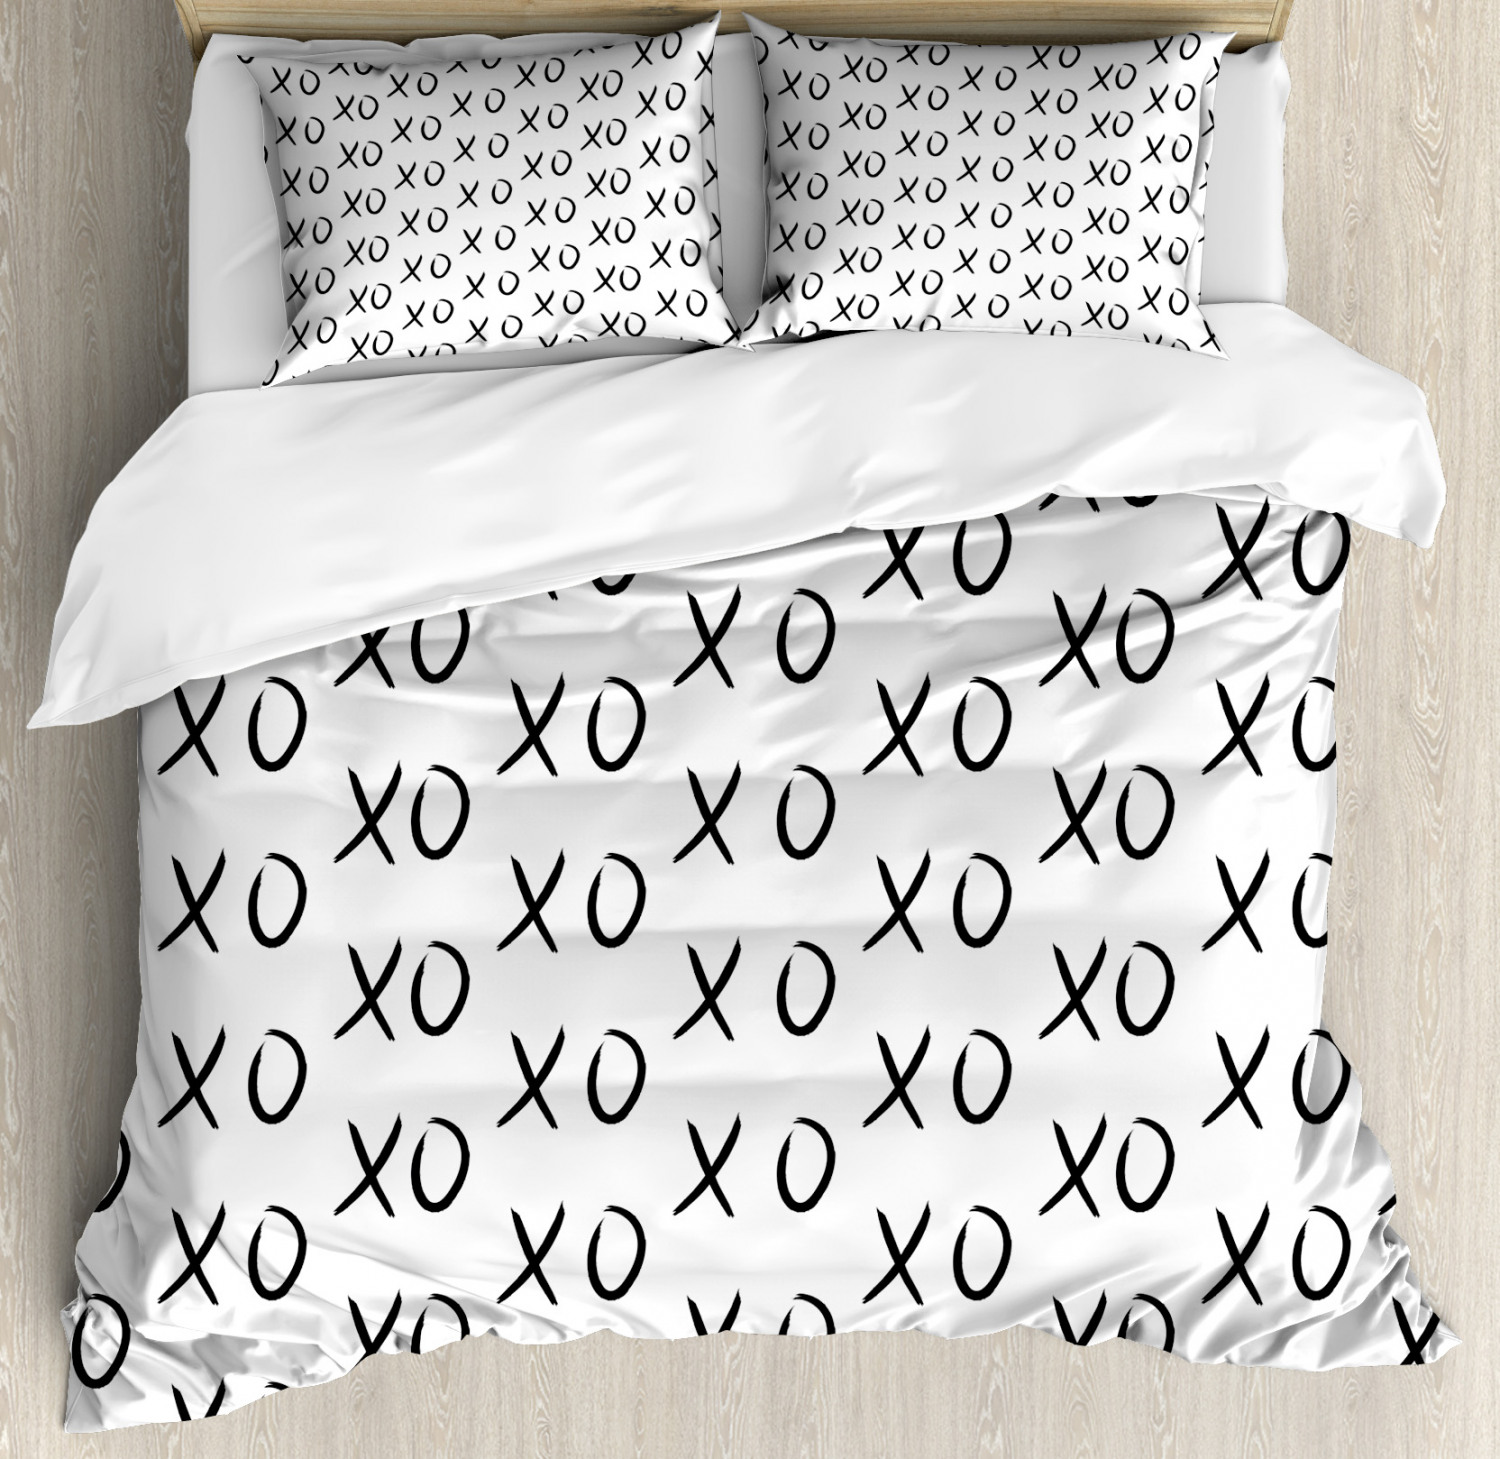 Xo Duvet Cover Set with Pillow Shams Affection Expression Kisses Print